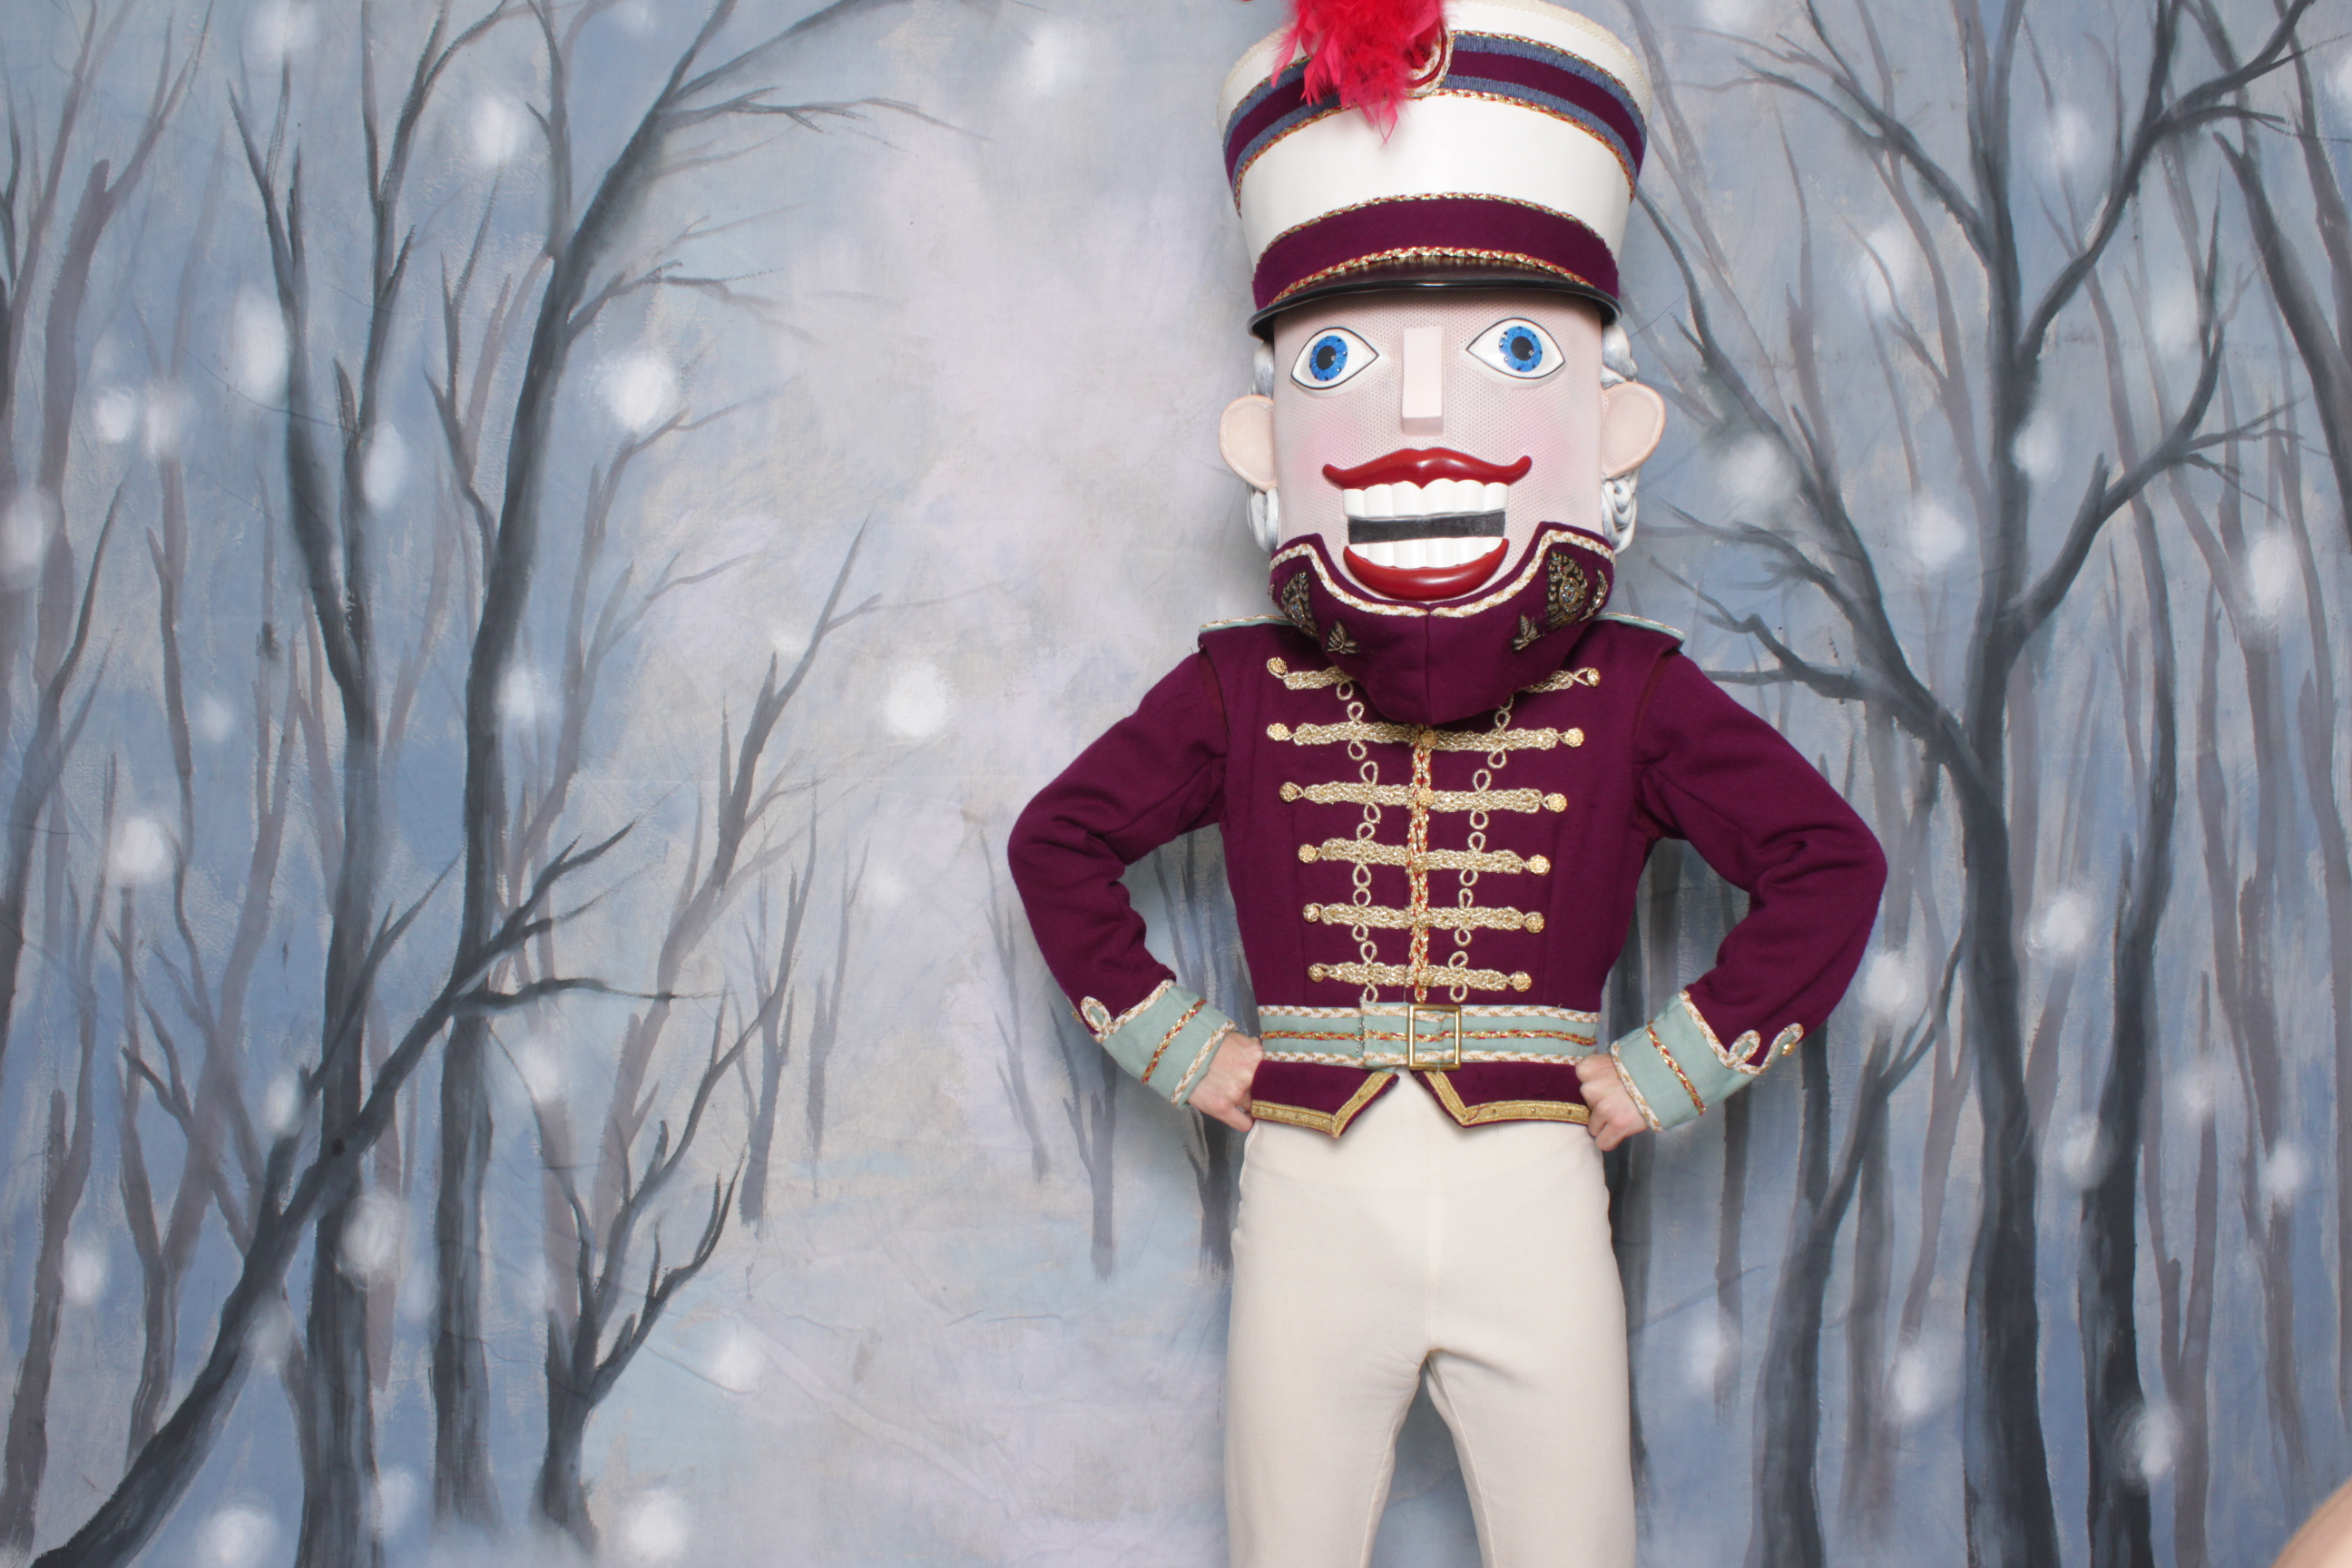 The nutcracker posing for photos